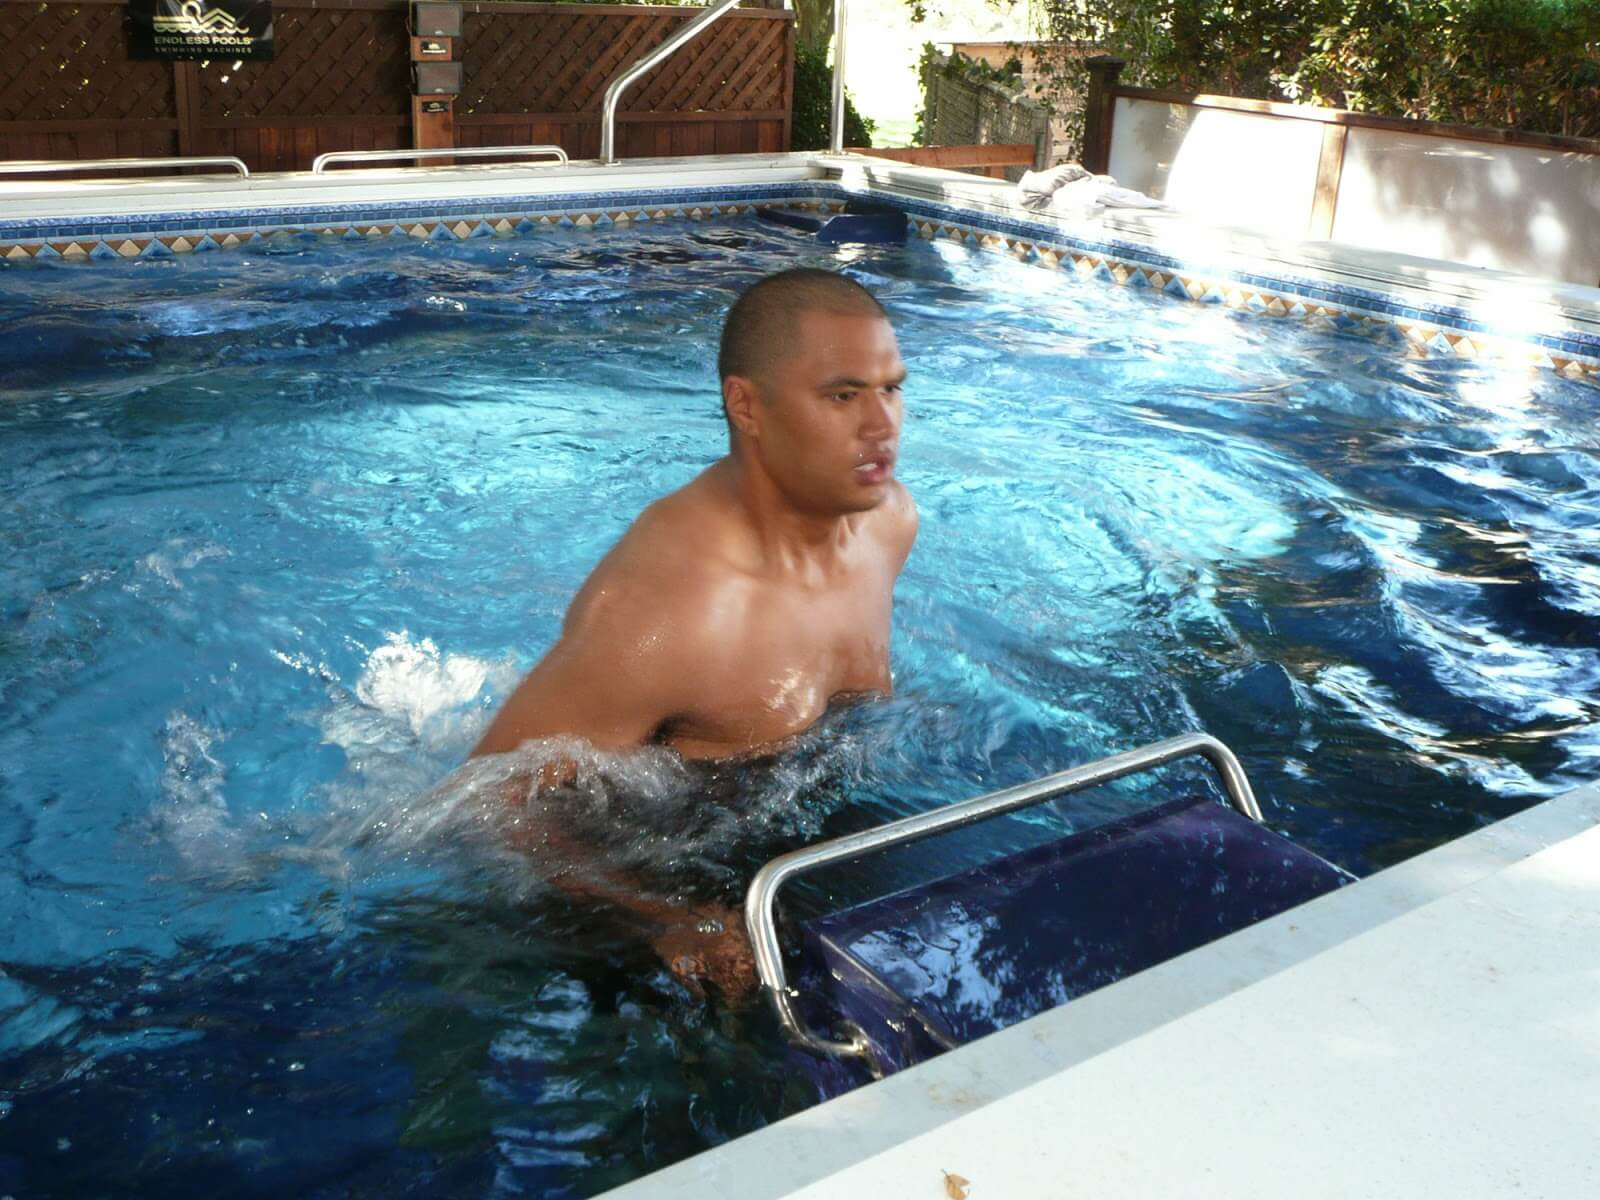 Sam from The Biggest Loser, Season 9, using the Endless Pools Underwater Treadmill